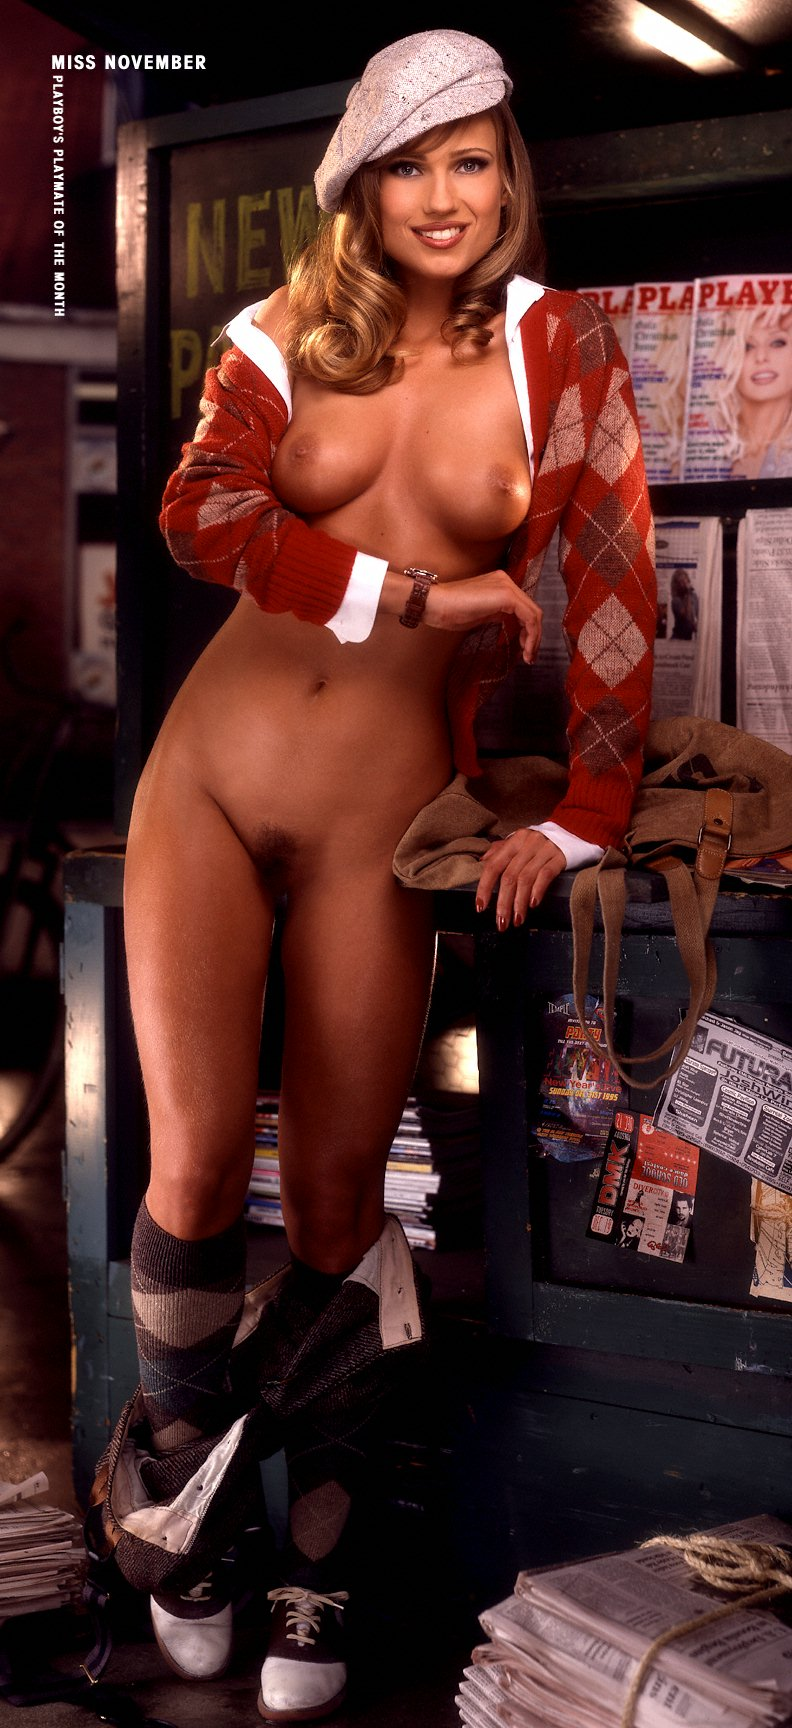 Anna Mucha Playboy nsfw november | the thought experiment | page 2